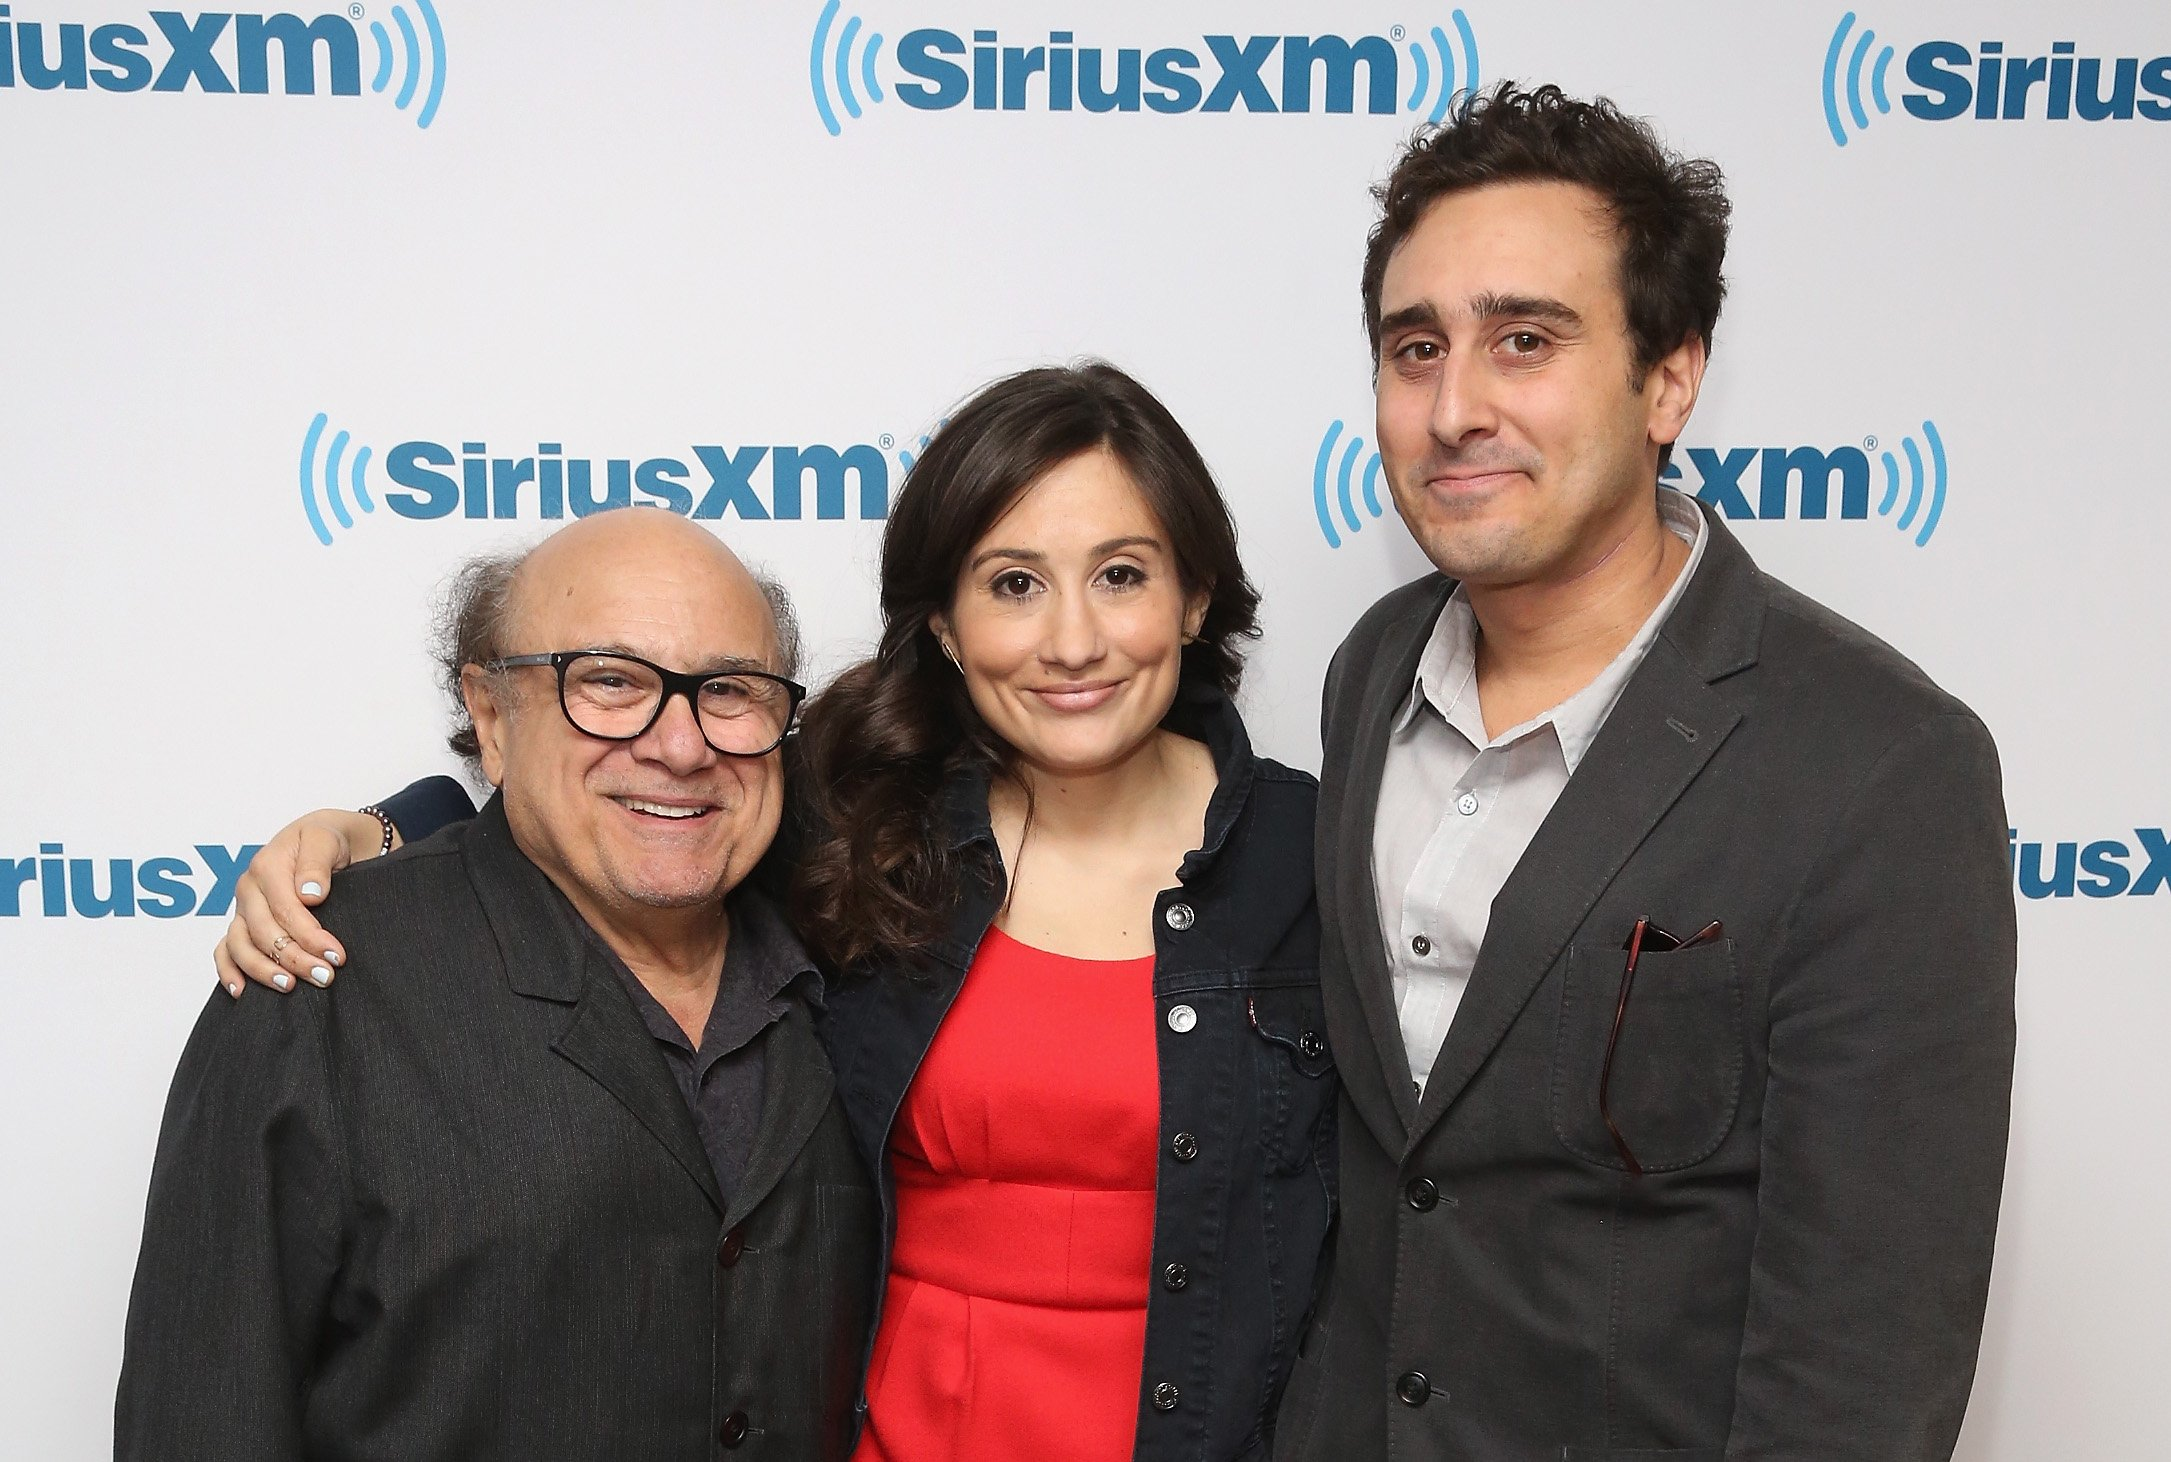 Danny DeVito, Lucy DeVito and Jake DeVito visit at SiriusXM Studio on April 18, 2016, in New York City. | Source: Getty Images.